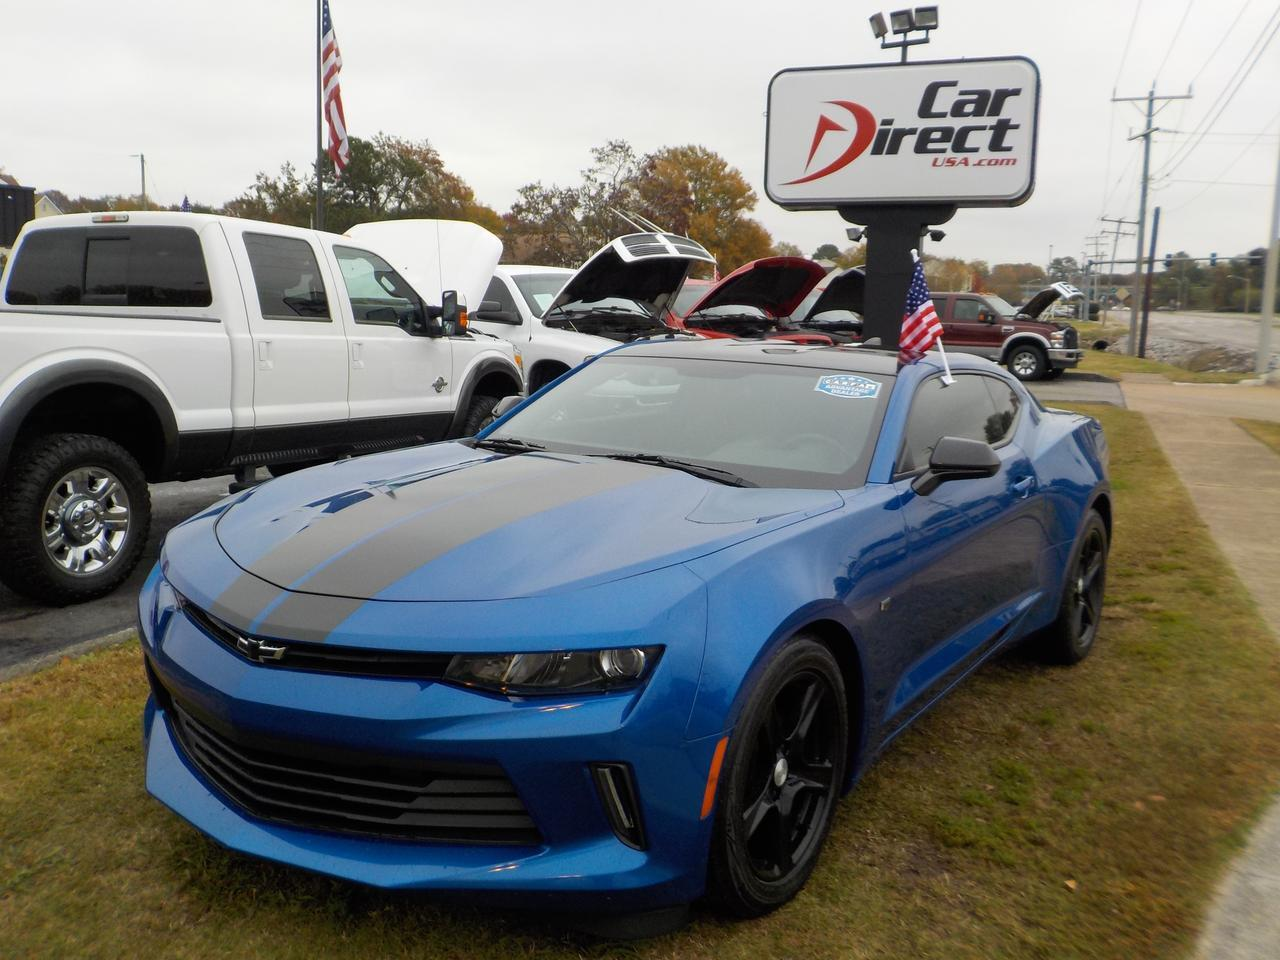 2016 CHEVROLET CAMARO 1LT, WARRANTY, MANUAL, KEYLESS ENTRY, SATELLITE RADIO, BLUETOOTH, ONSTAR, AUX/USB PORT! Virginia Beach VA